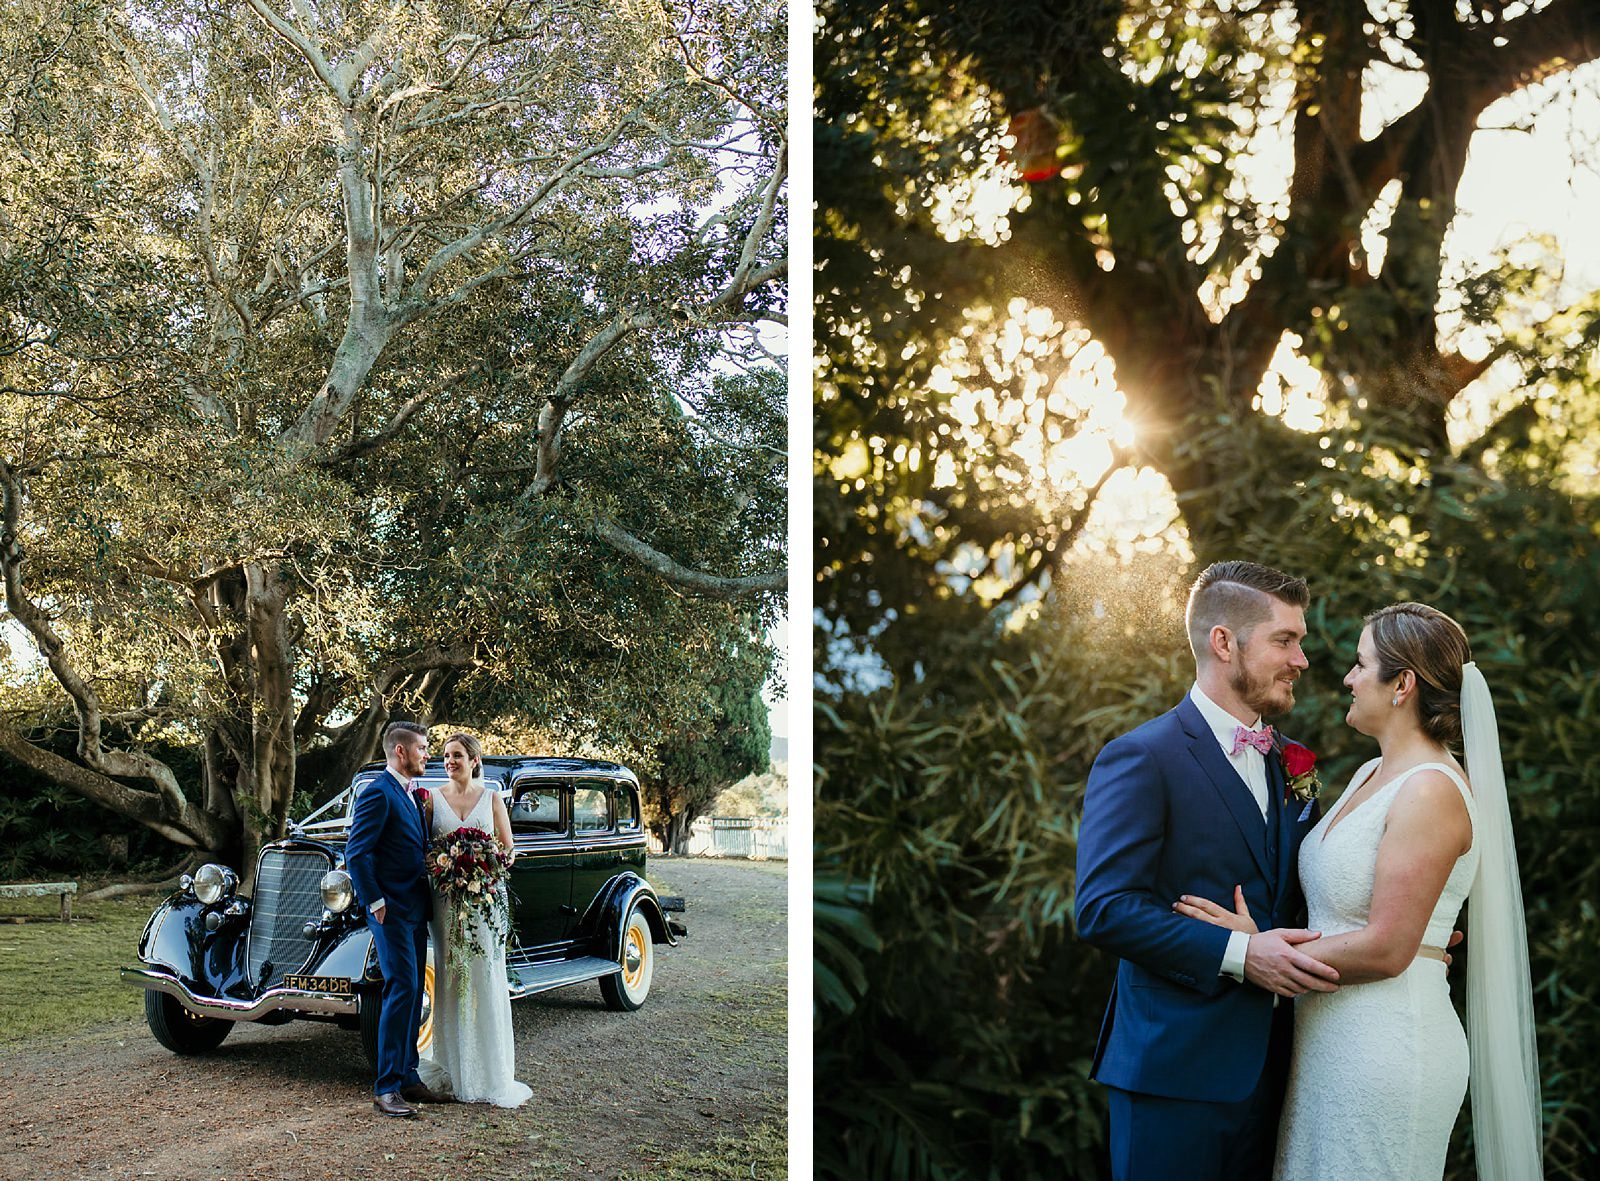 088Hunter Valley Wedding Photographers Bryce Noone Photography at Tocal Homestead Wedding Venue.jpg